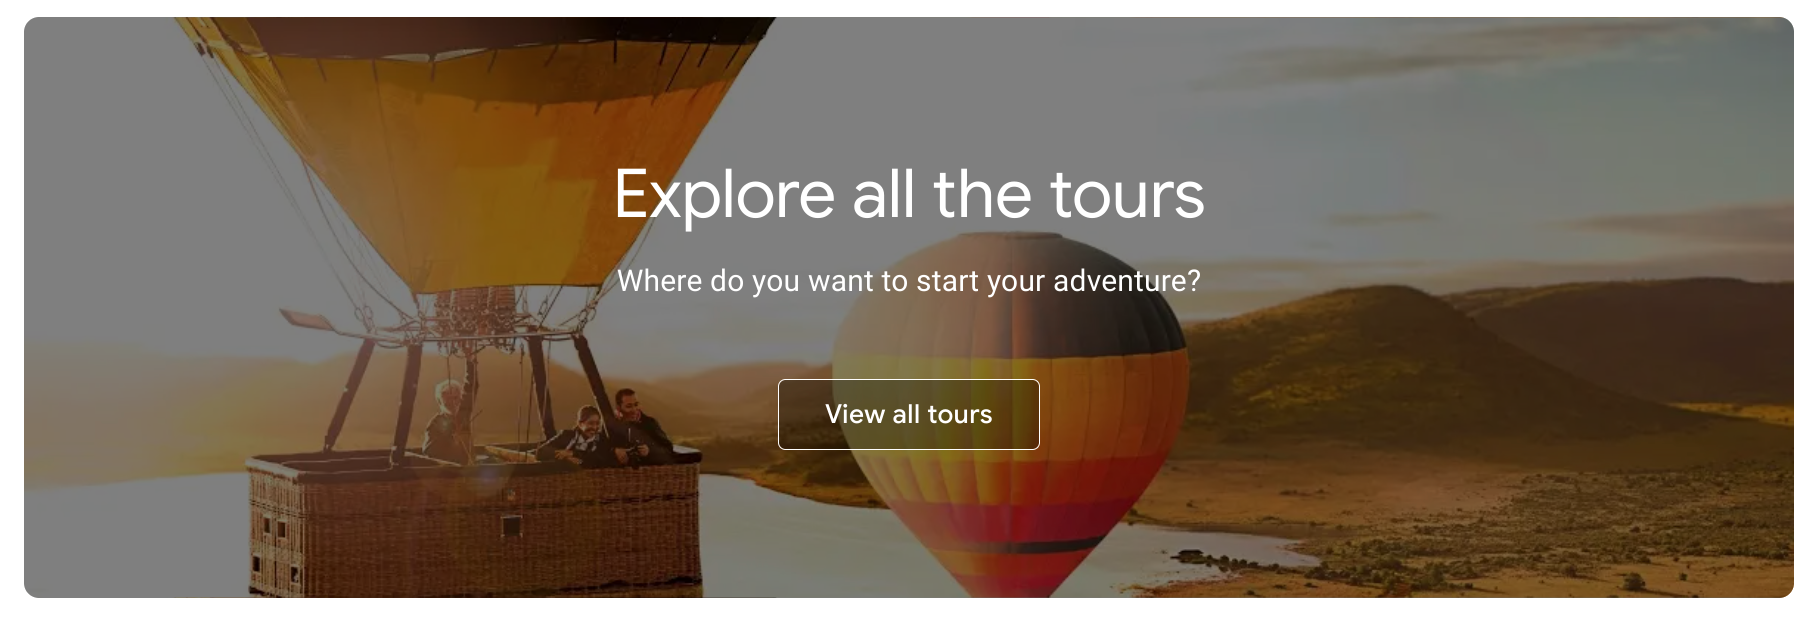 """Explore all the tours Where do you want to start your adventure? Clickable """"View all tours"""" button."""